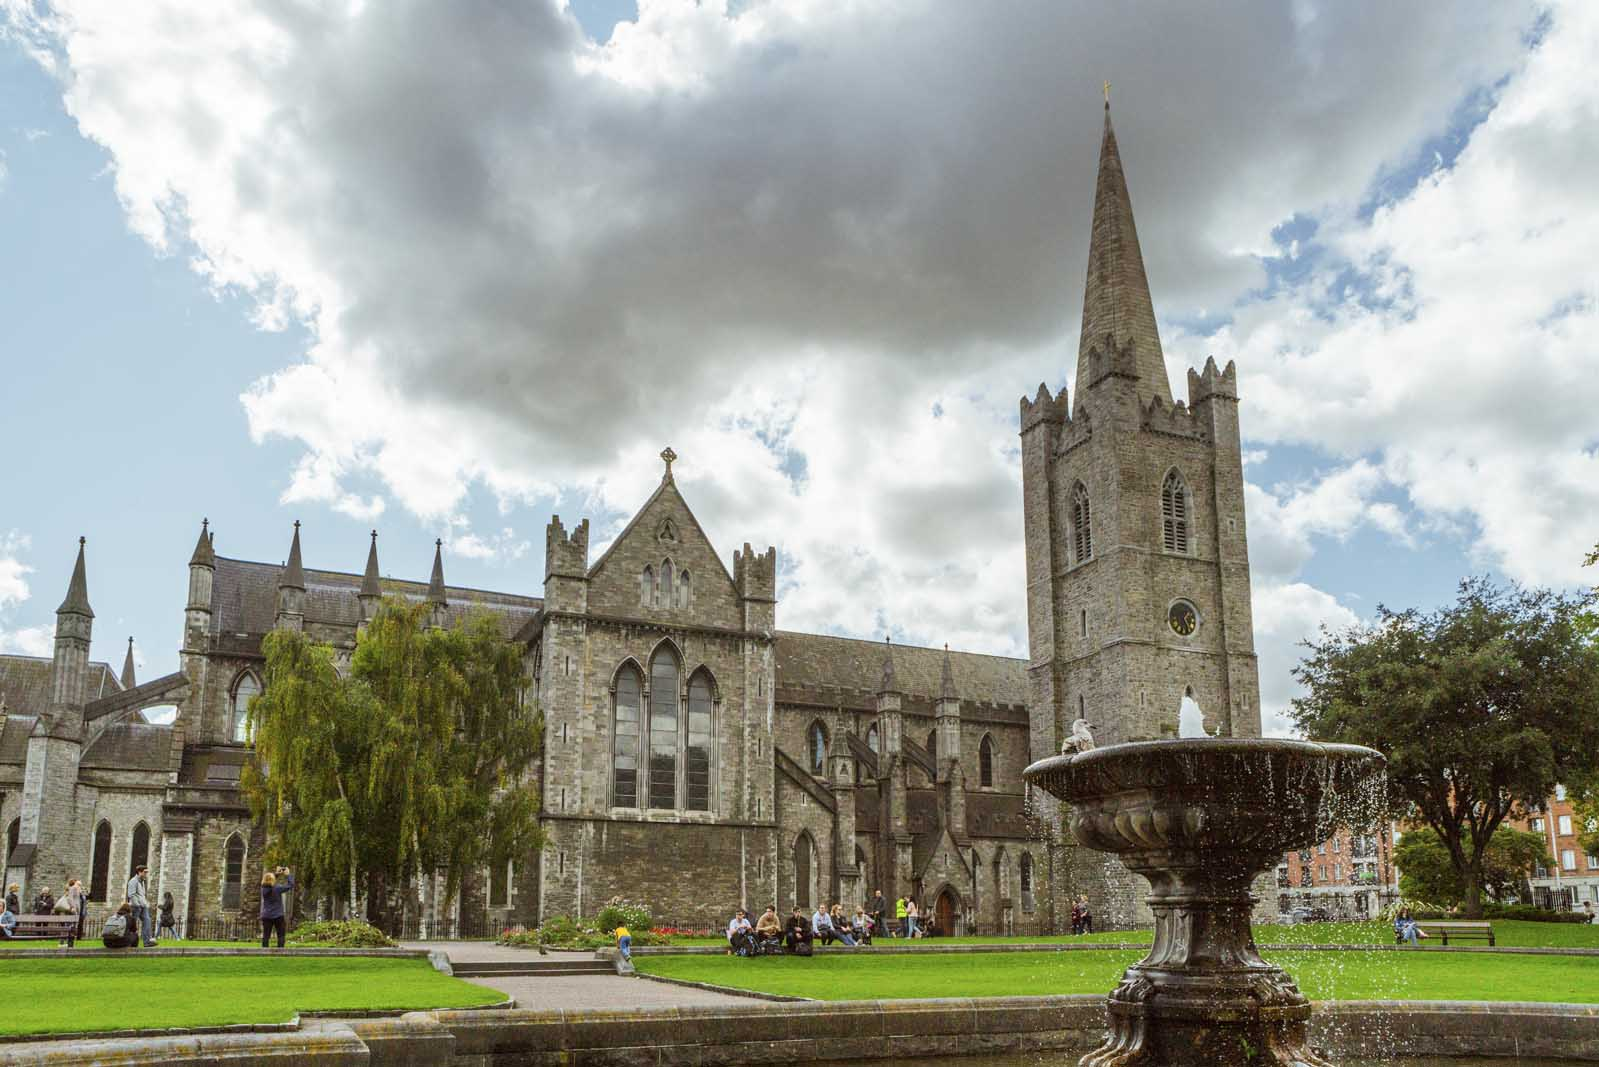 Exterior-of-St.-Patrick's-Cathedral-Dublin-Ireland